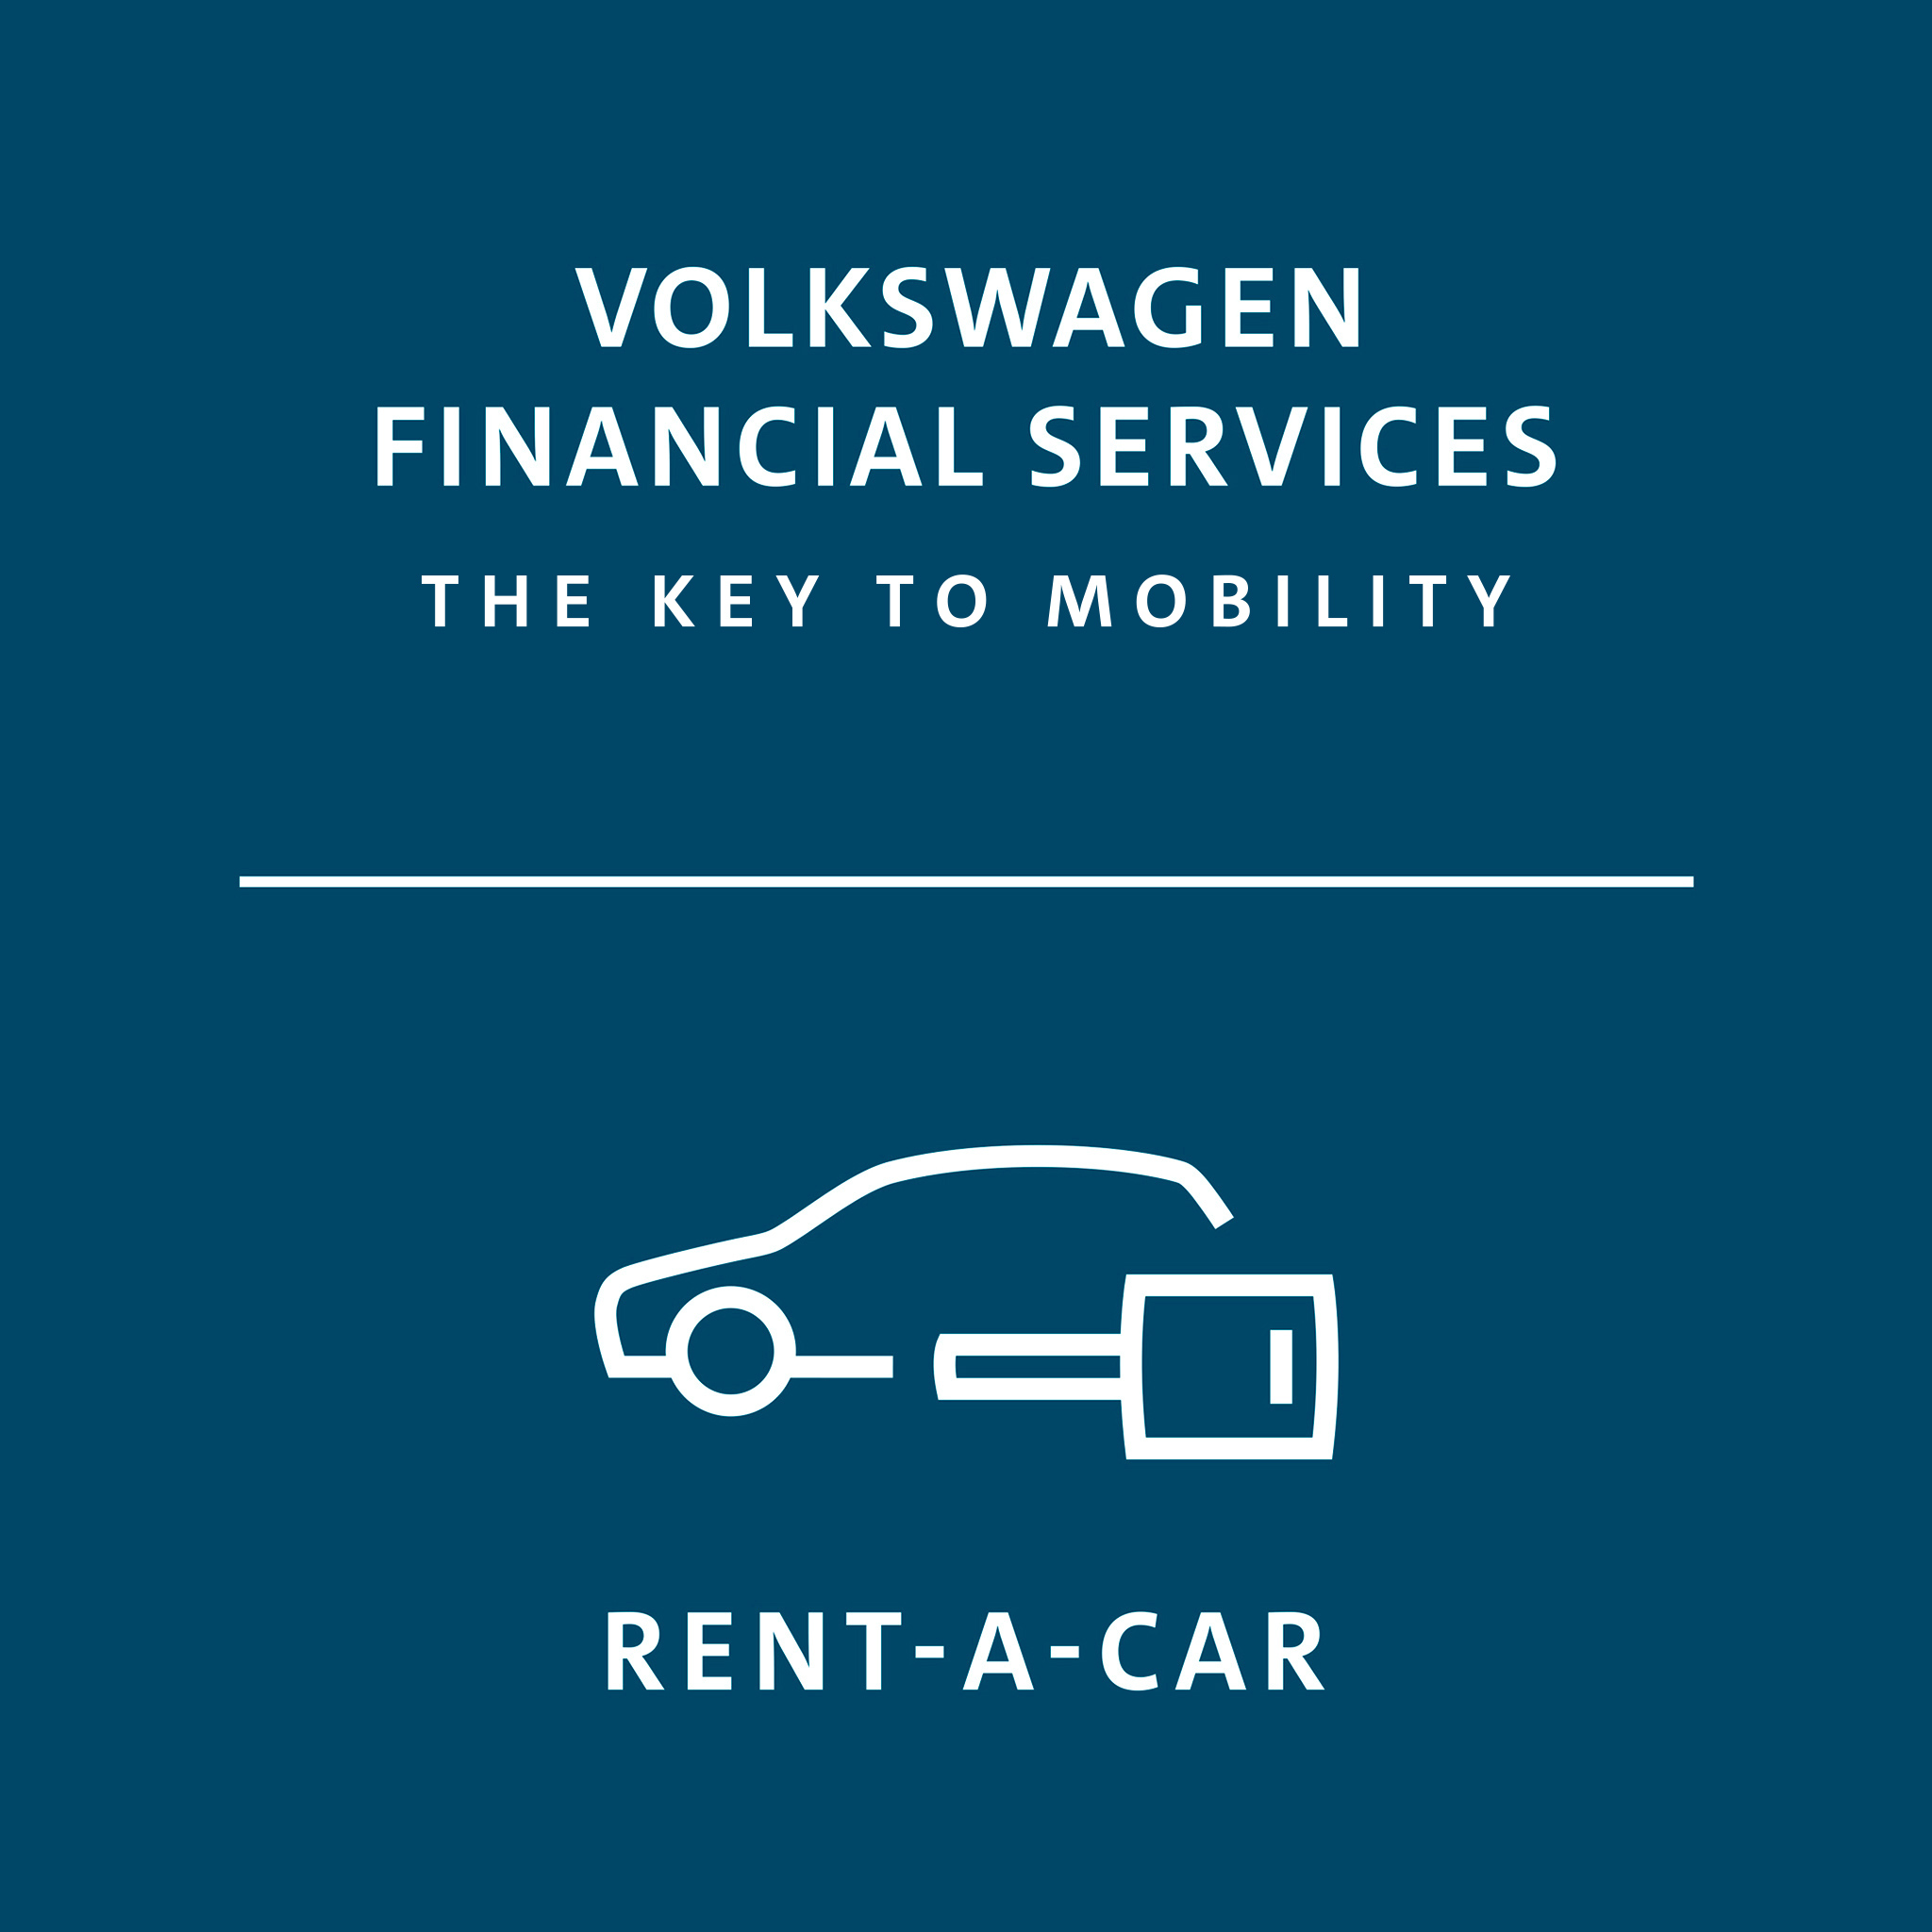 VW FS Rent-a-Car - Frankfurt Ost